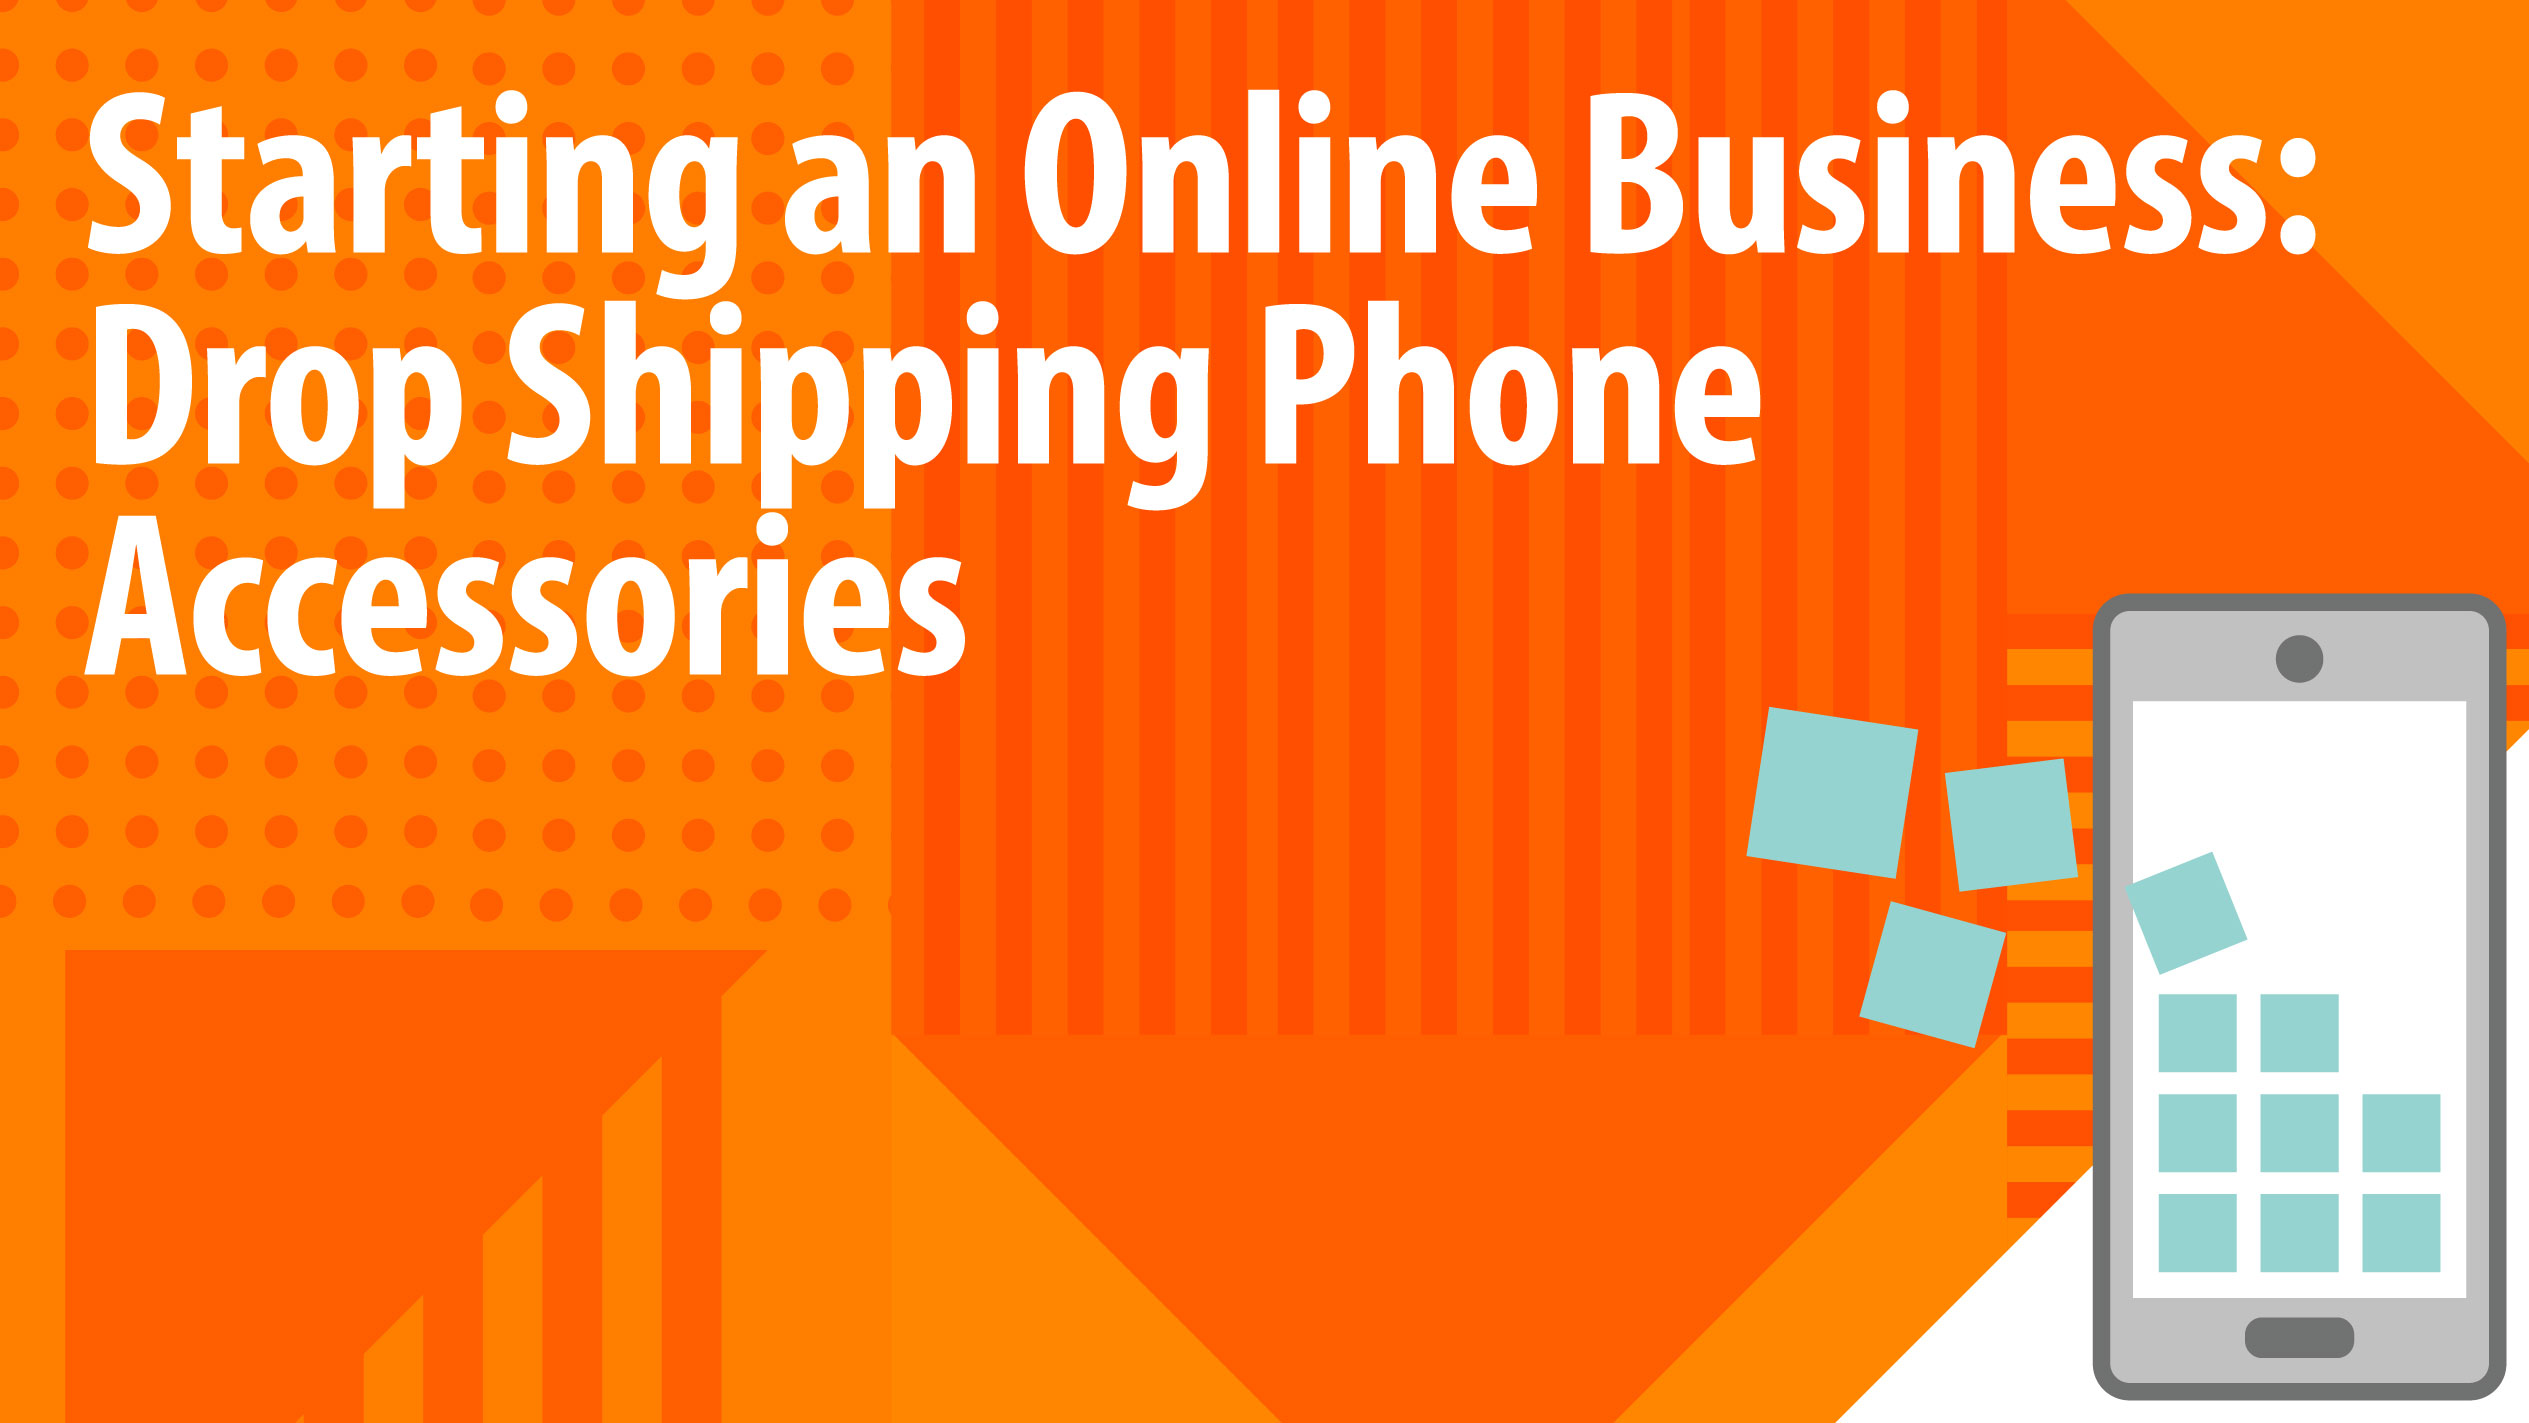 Starting an Online Business: Drop Shipping Phone Accessories